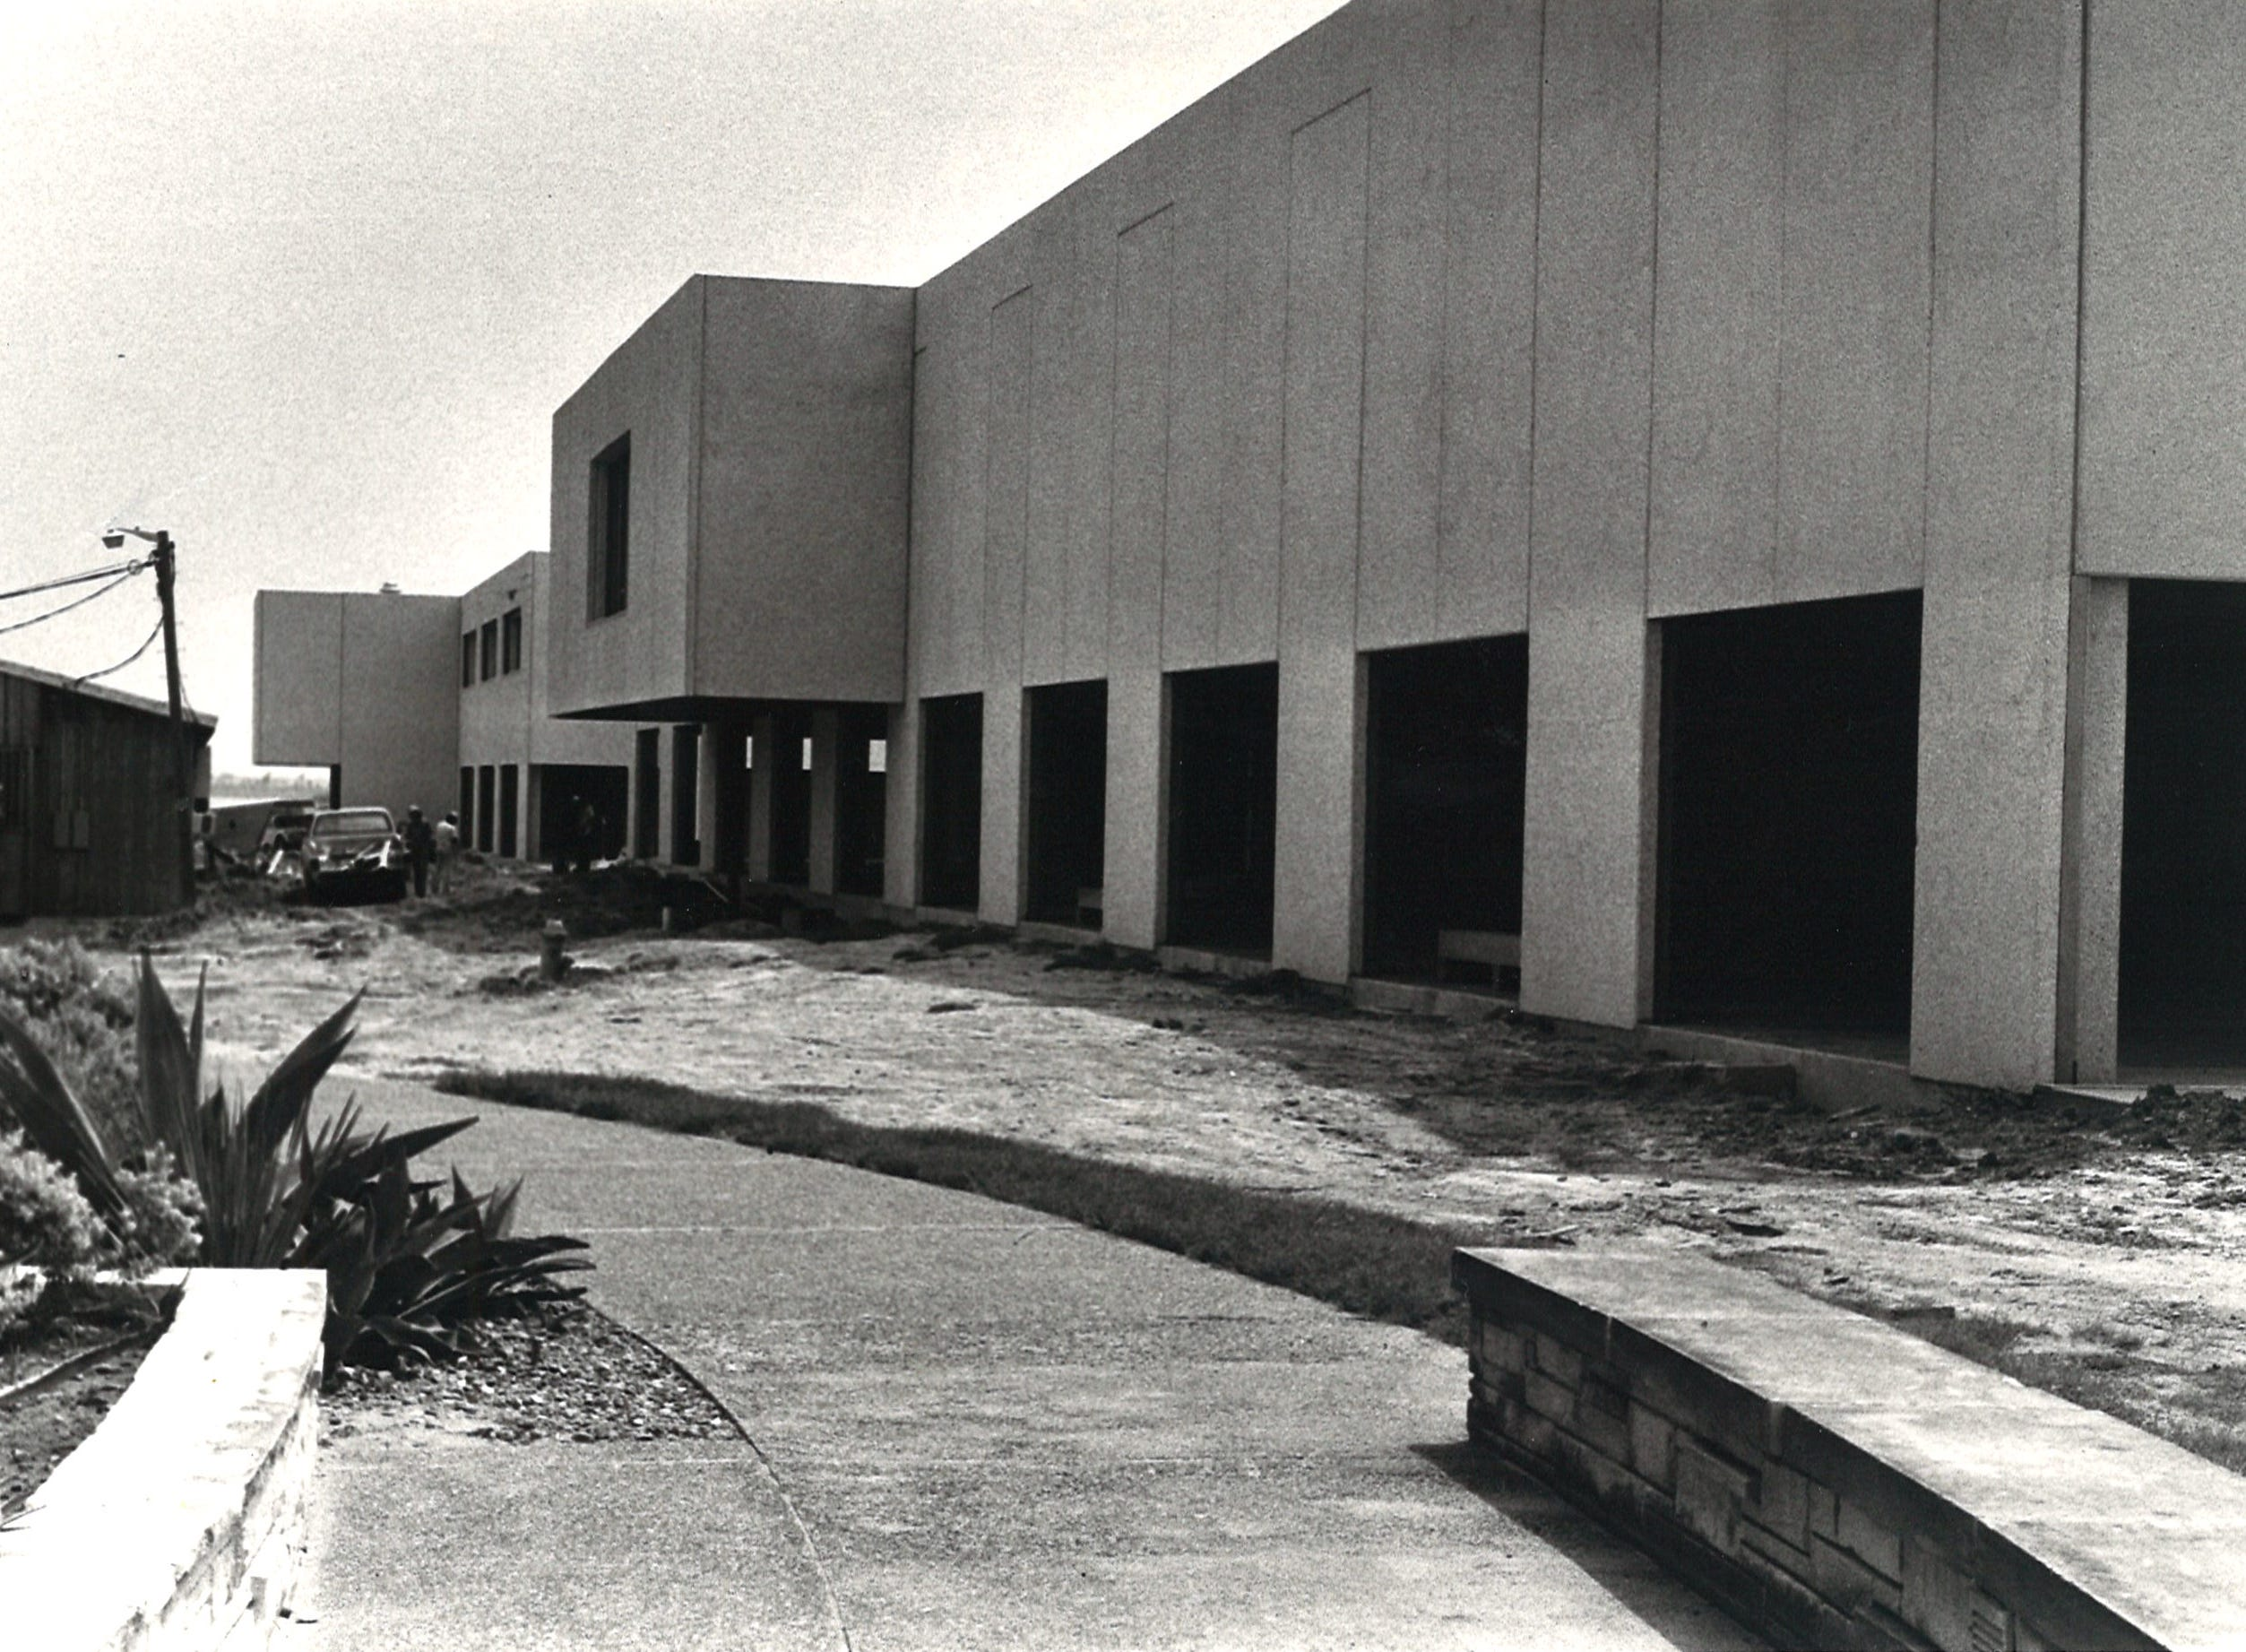 """The new library at Corpus Christi State University under construction in August 1978. The $2.9 million building was 109,000 square feet, more than five times the size of the previous library in """"the round building."""""""